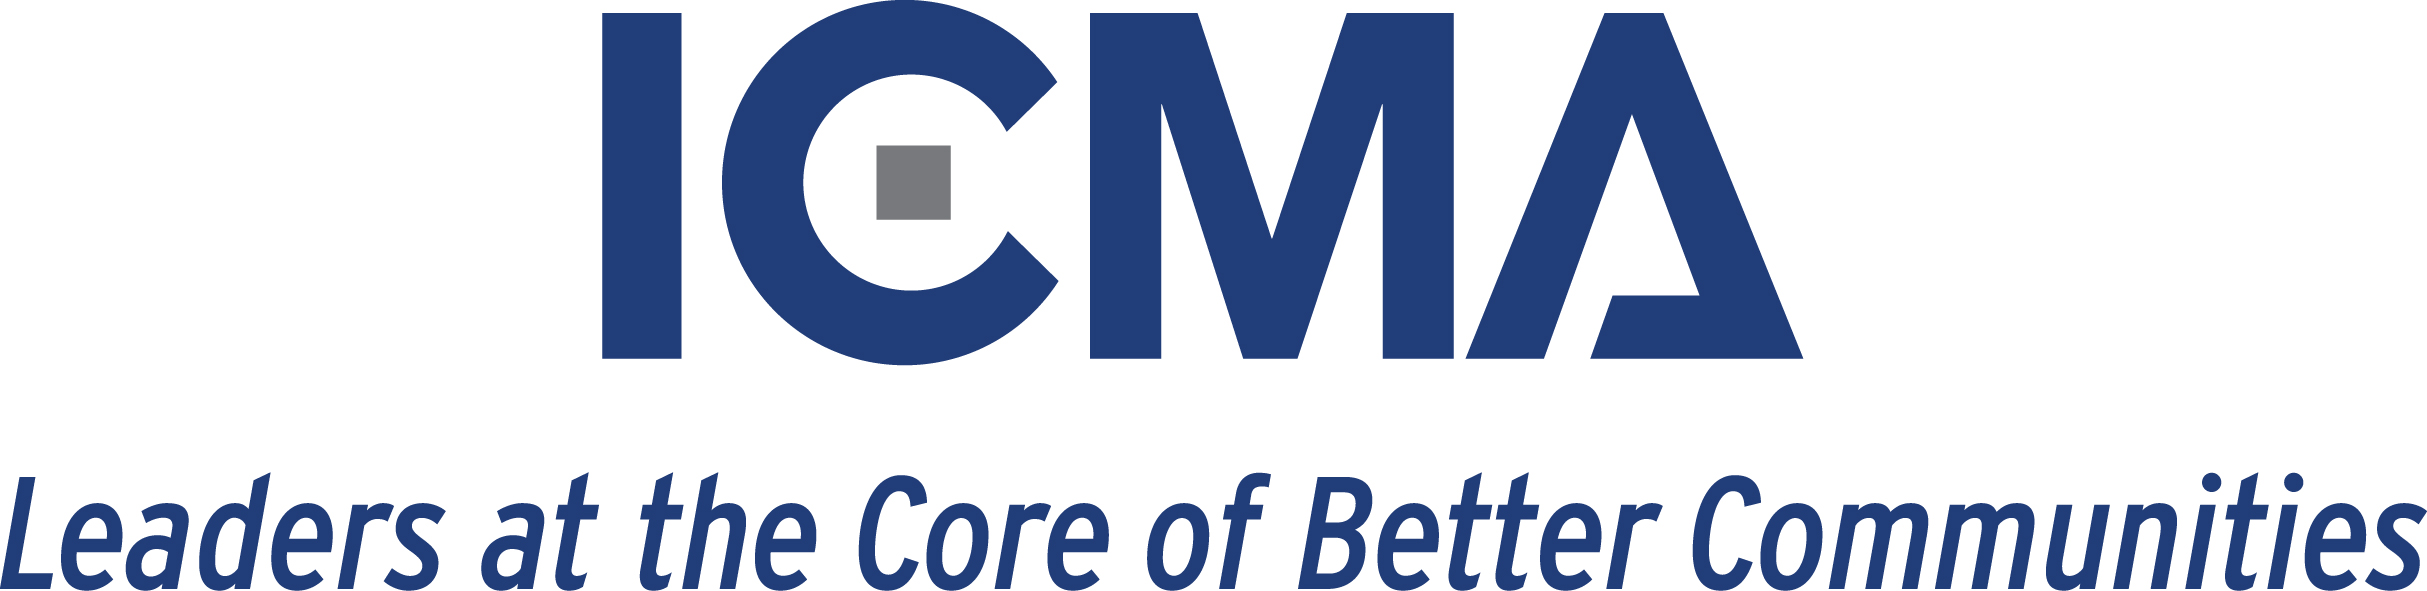 ICMA Annual Conference - September 23 - 26 in Baltimore, Maryland